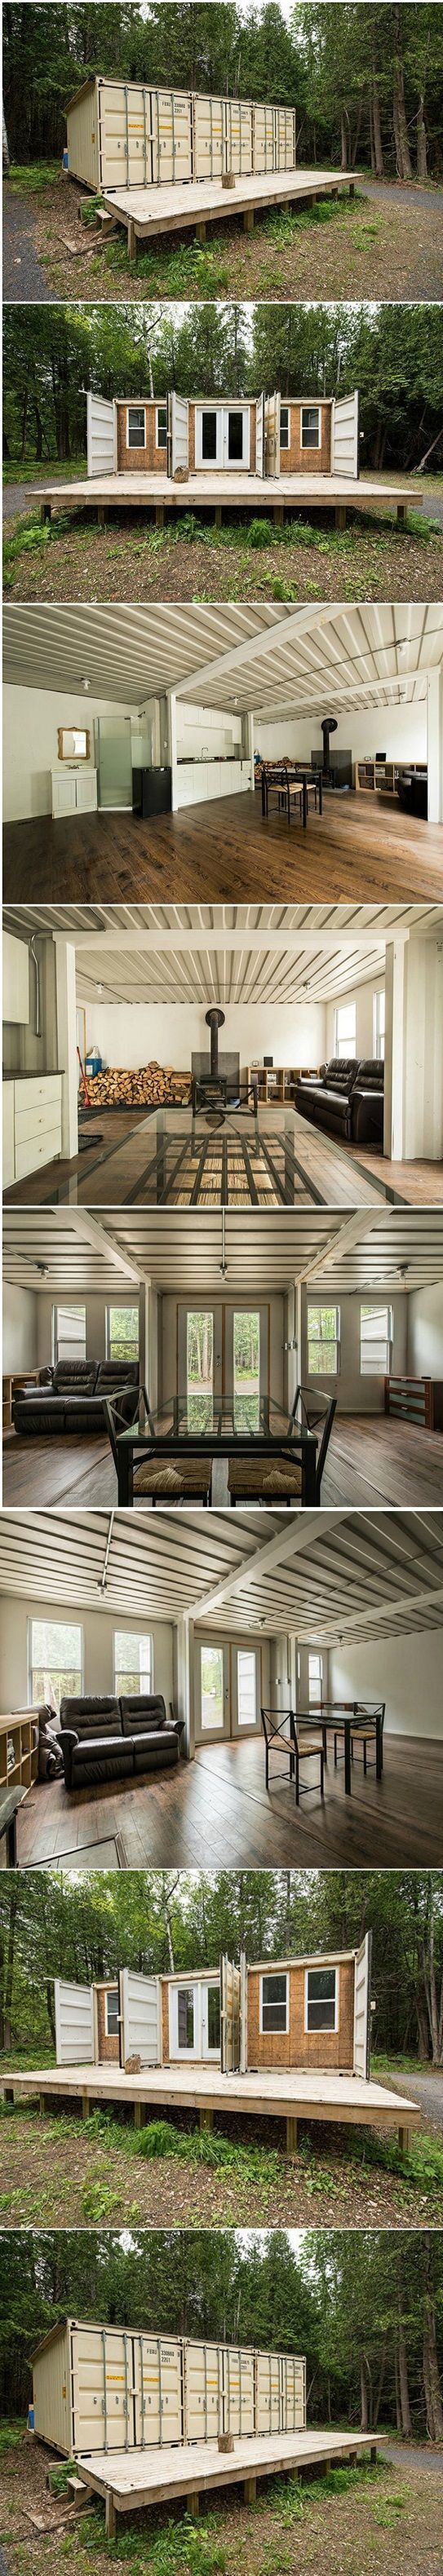 95 Best Unconventional Home Ideas Images On Pinterest Container Electrical Rough In Wiring Of Earthship Tire Walls Pictures To Pin Cabin Built Out 3 Shipping Containers This Is So Beautiful Great